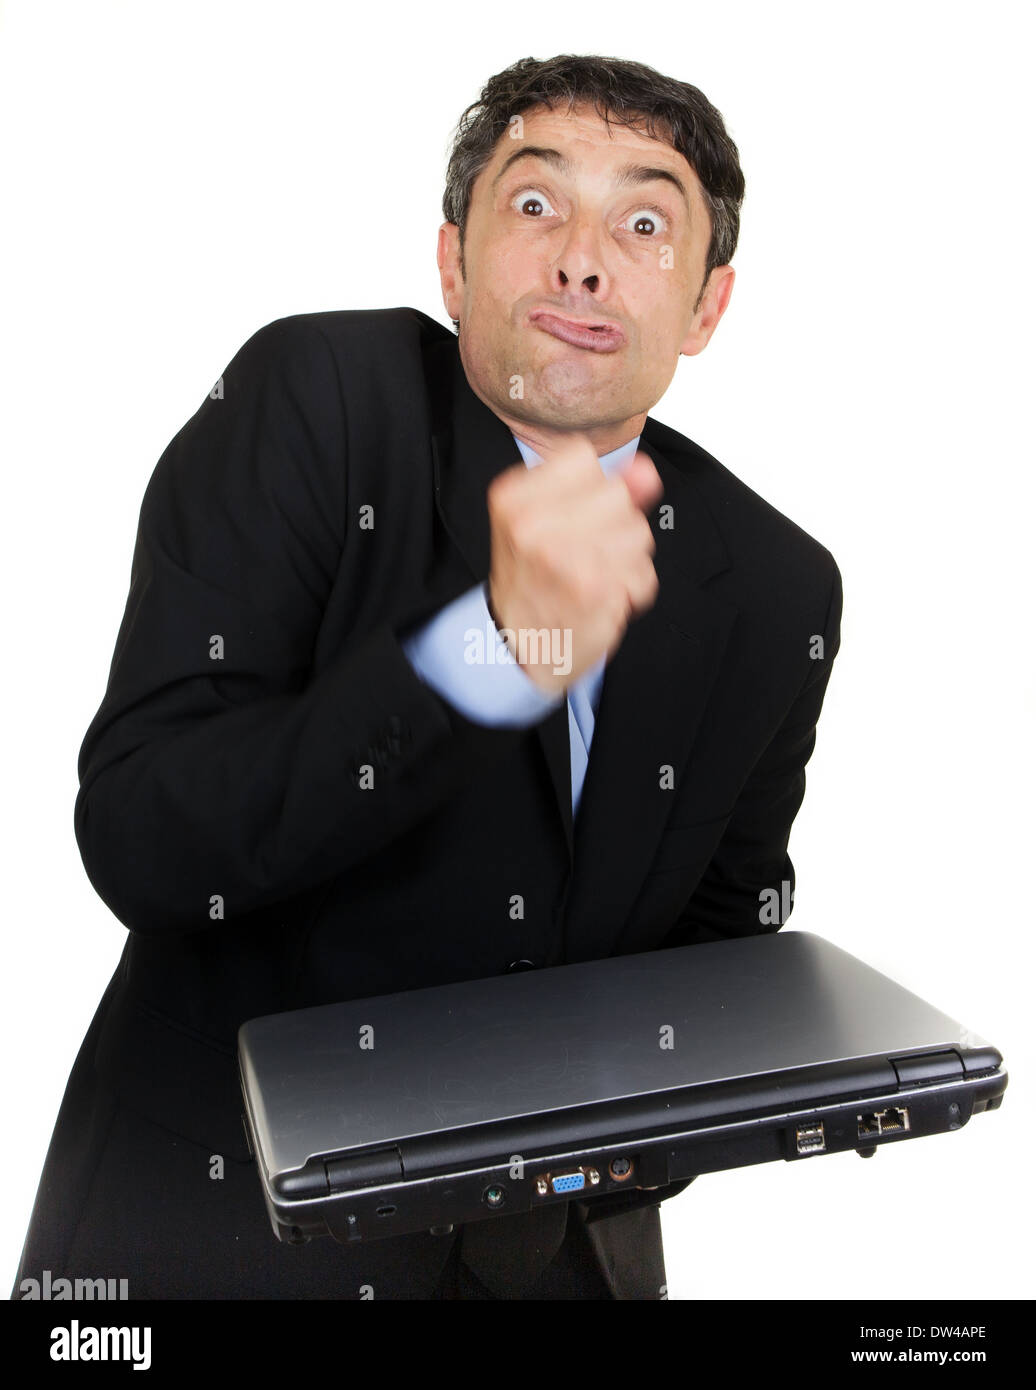 Exasperated man making a fist over his closed laptop computer which he is holding i his hand while grimacing at the camera - Stock Image